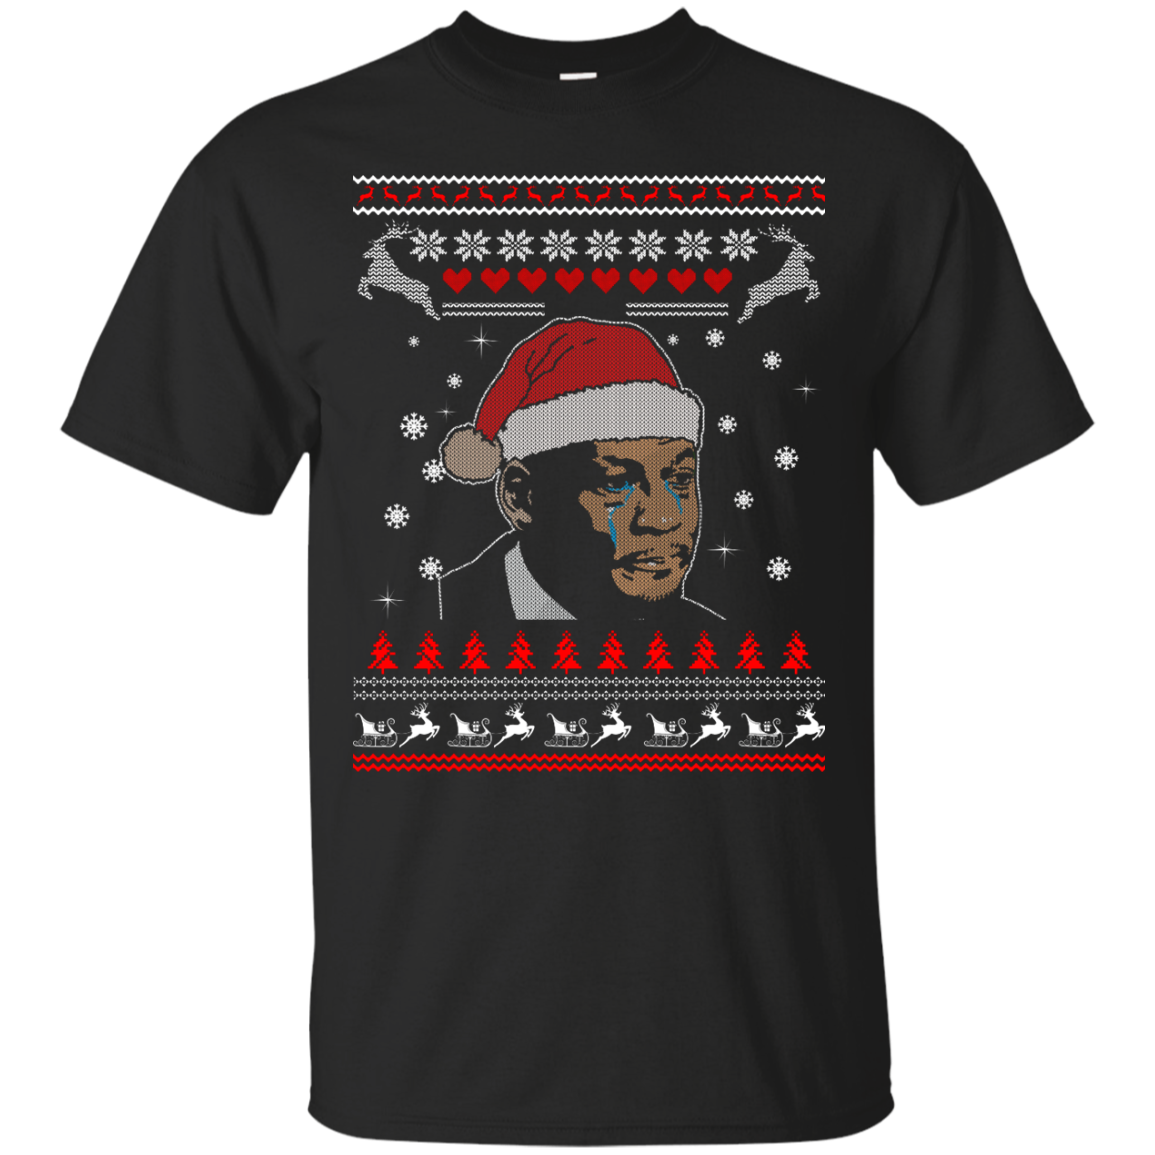 Crying Jordan T Shirt, Hoodies, Tank Top Christmas Gift